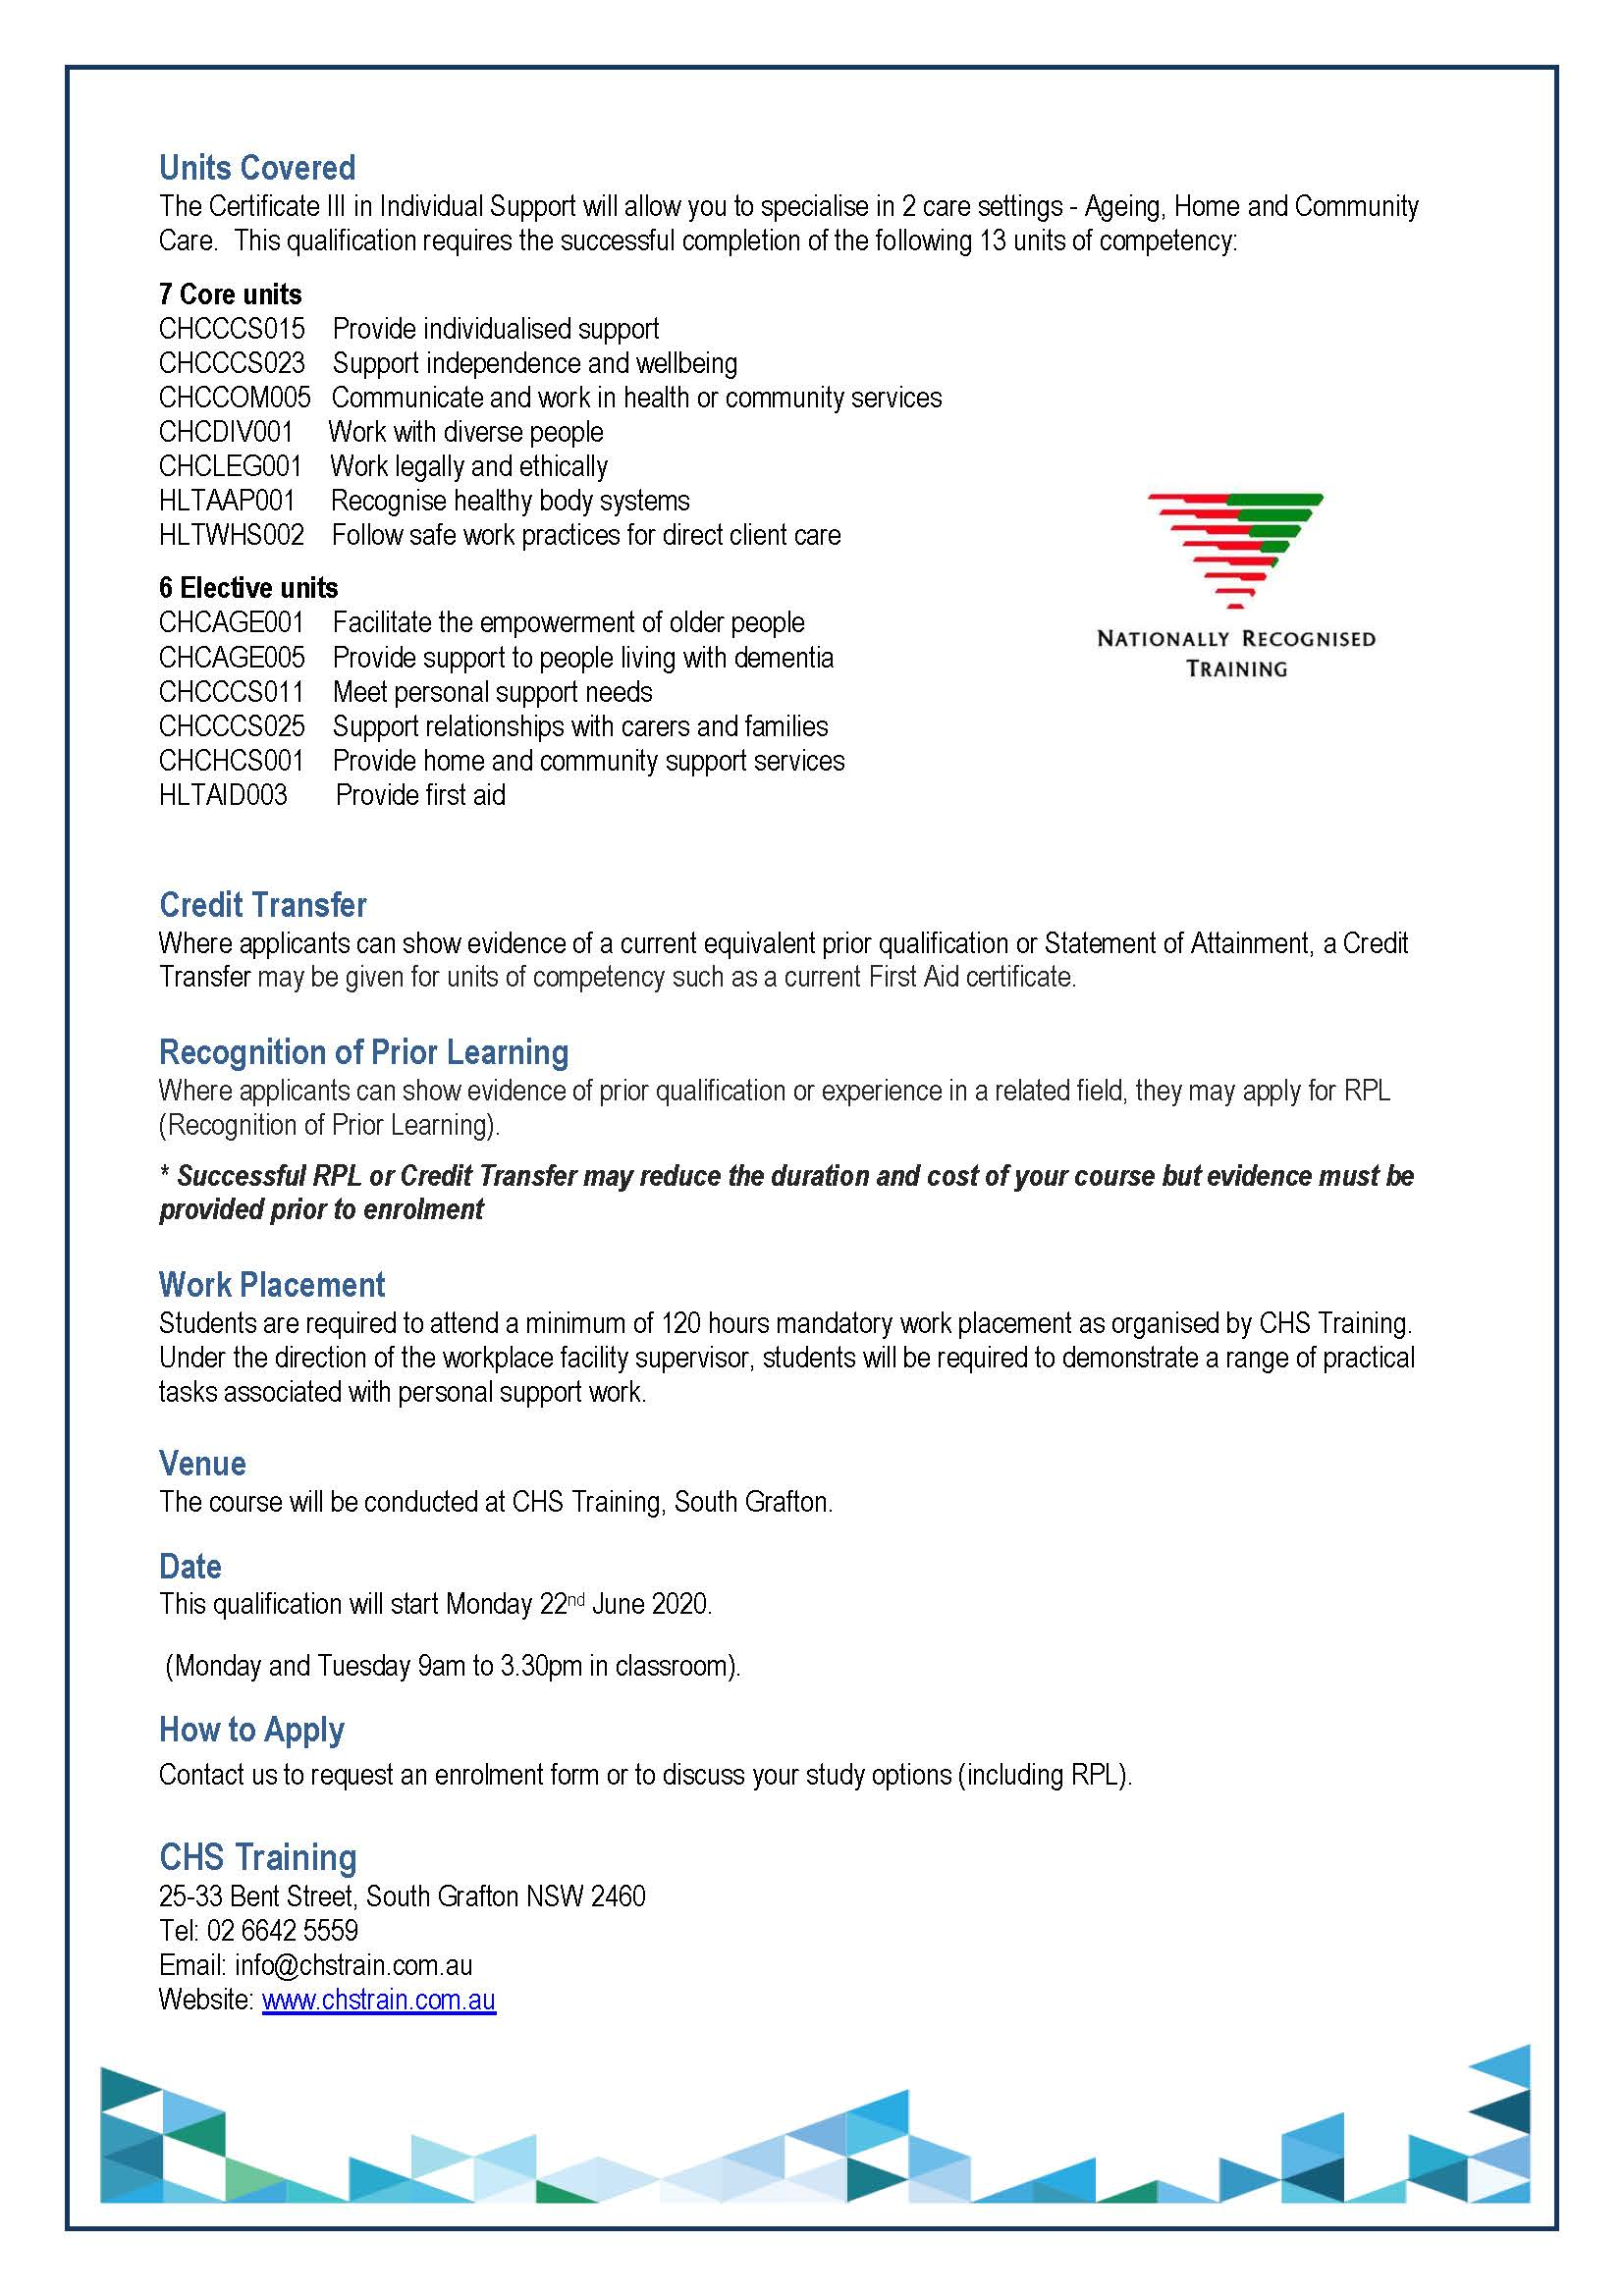 2020 Grafton Student Flyer for Cert III in IS 22.06.20 Page 2